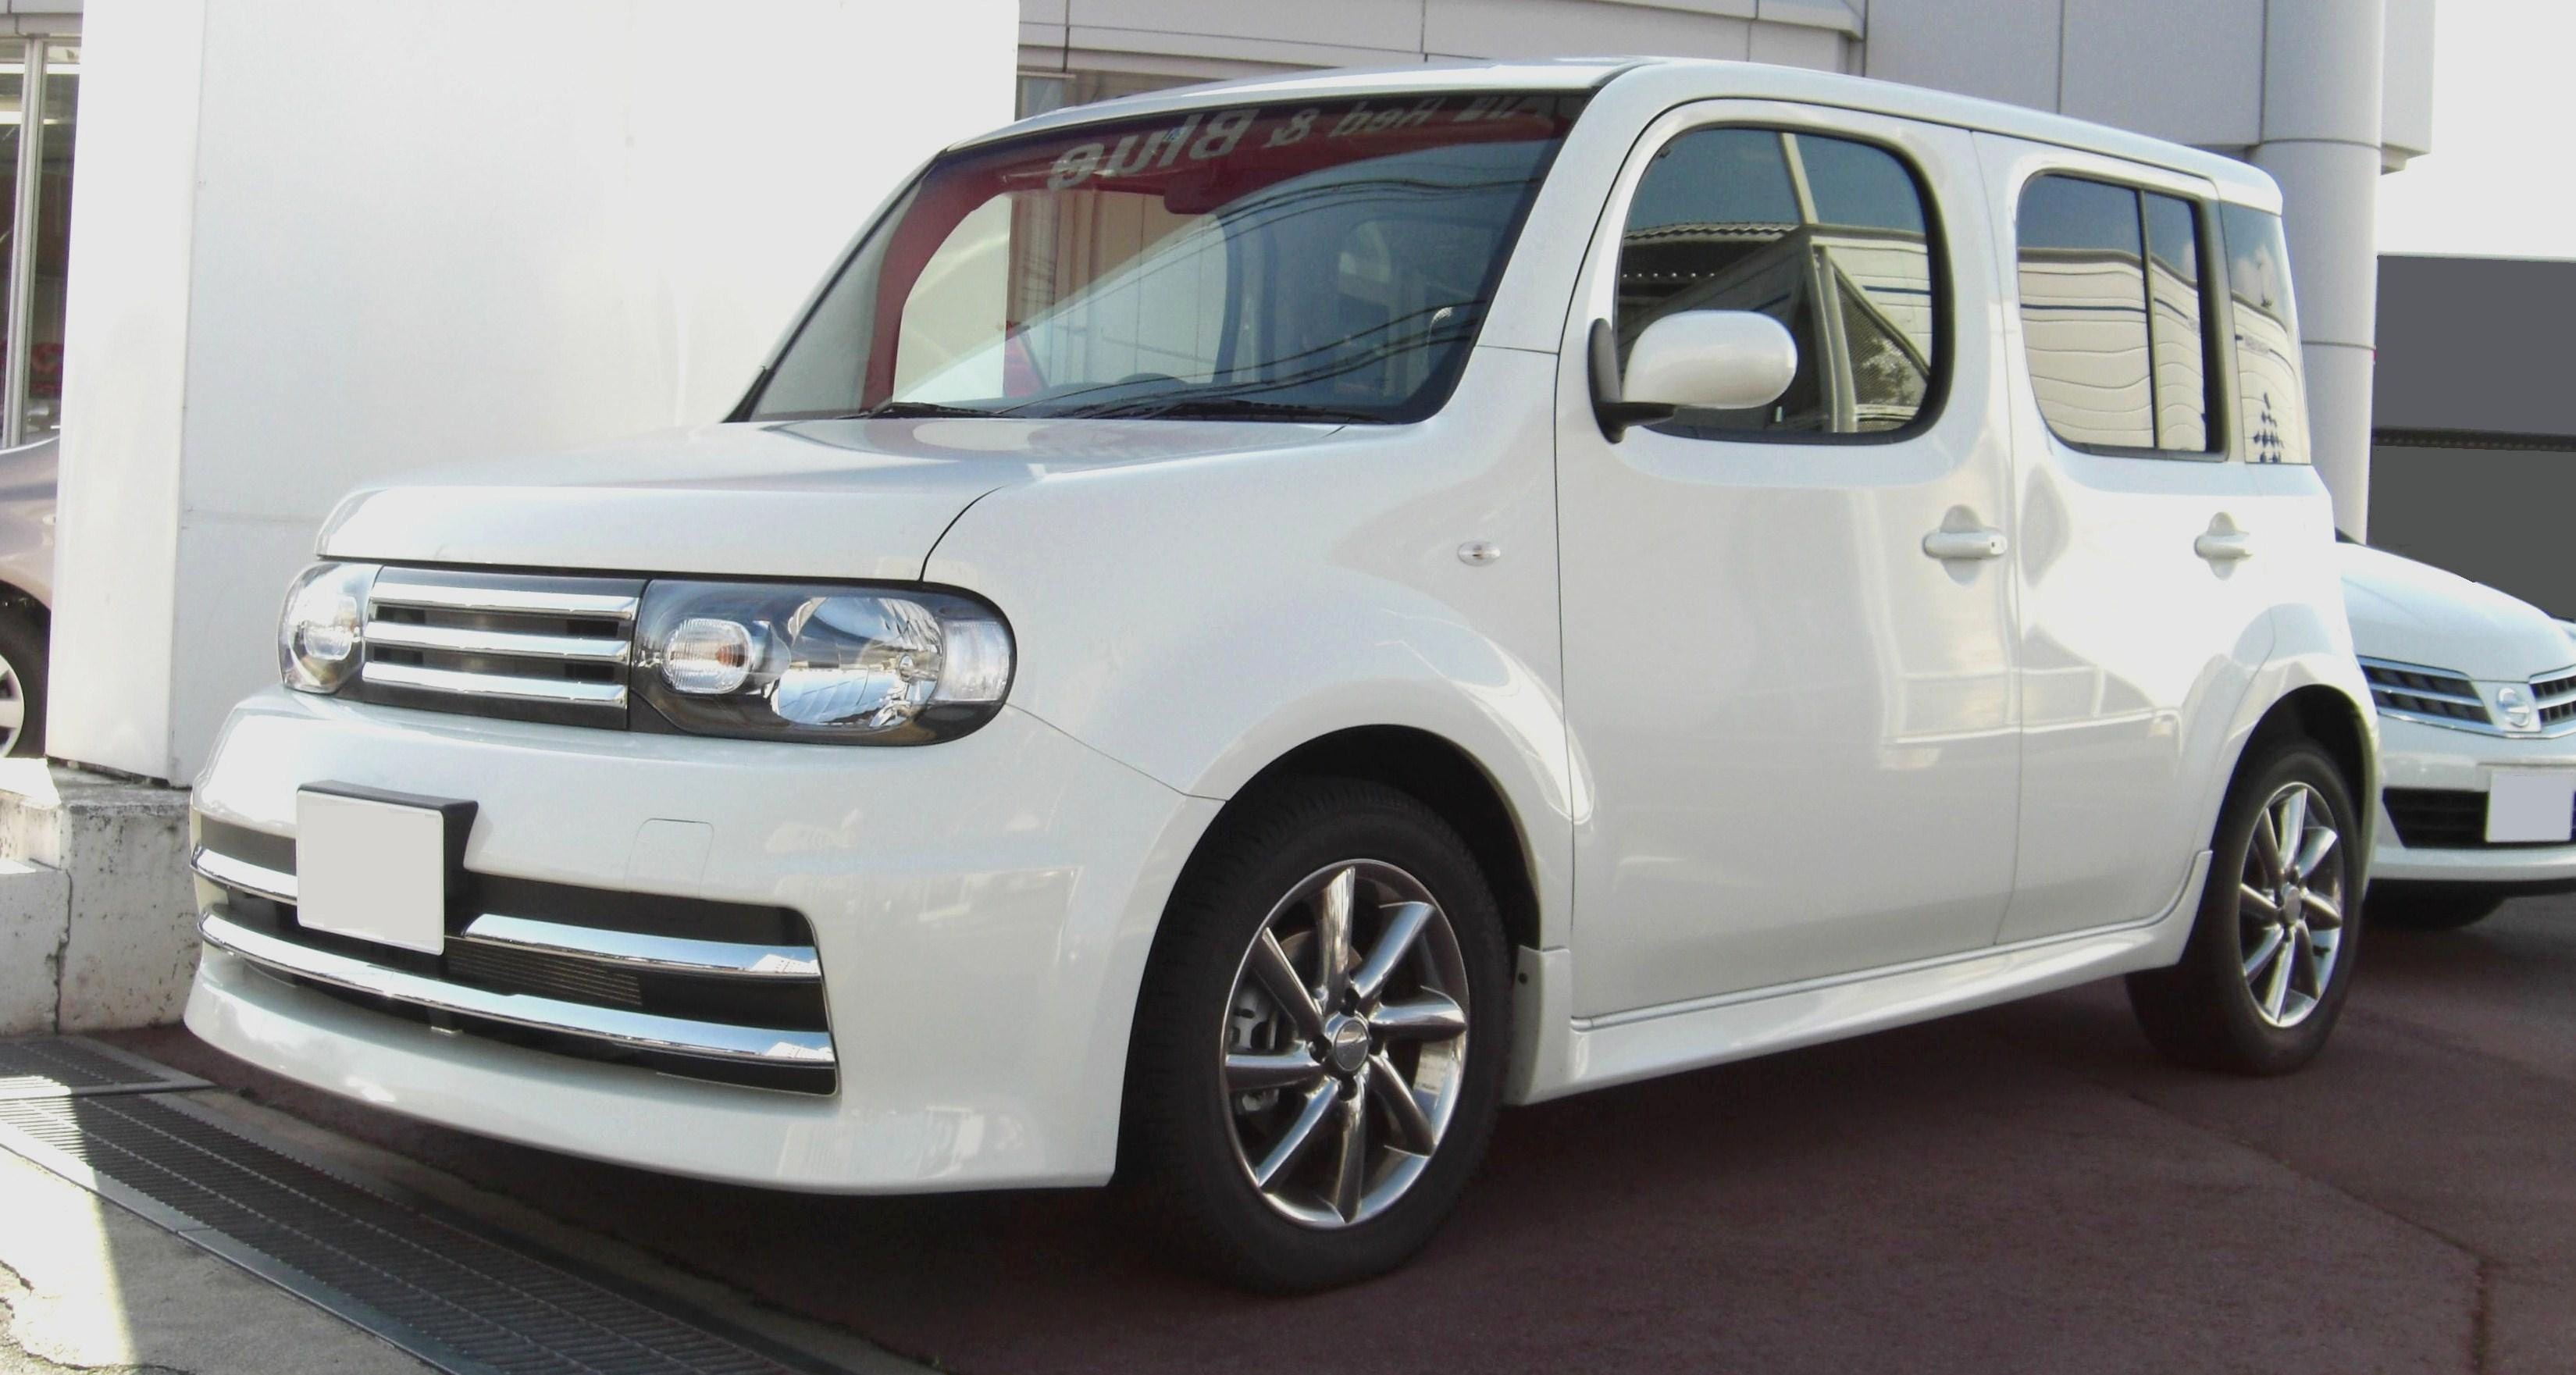 Pictures of nissan cube iii 2009 #2